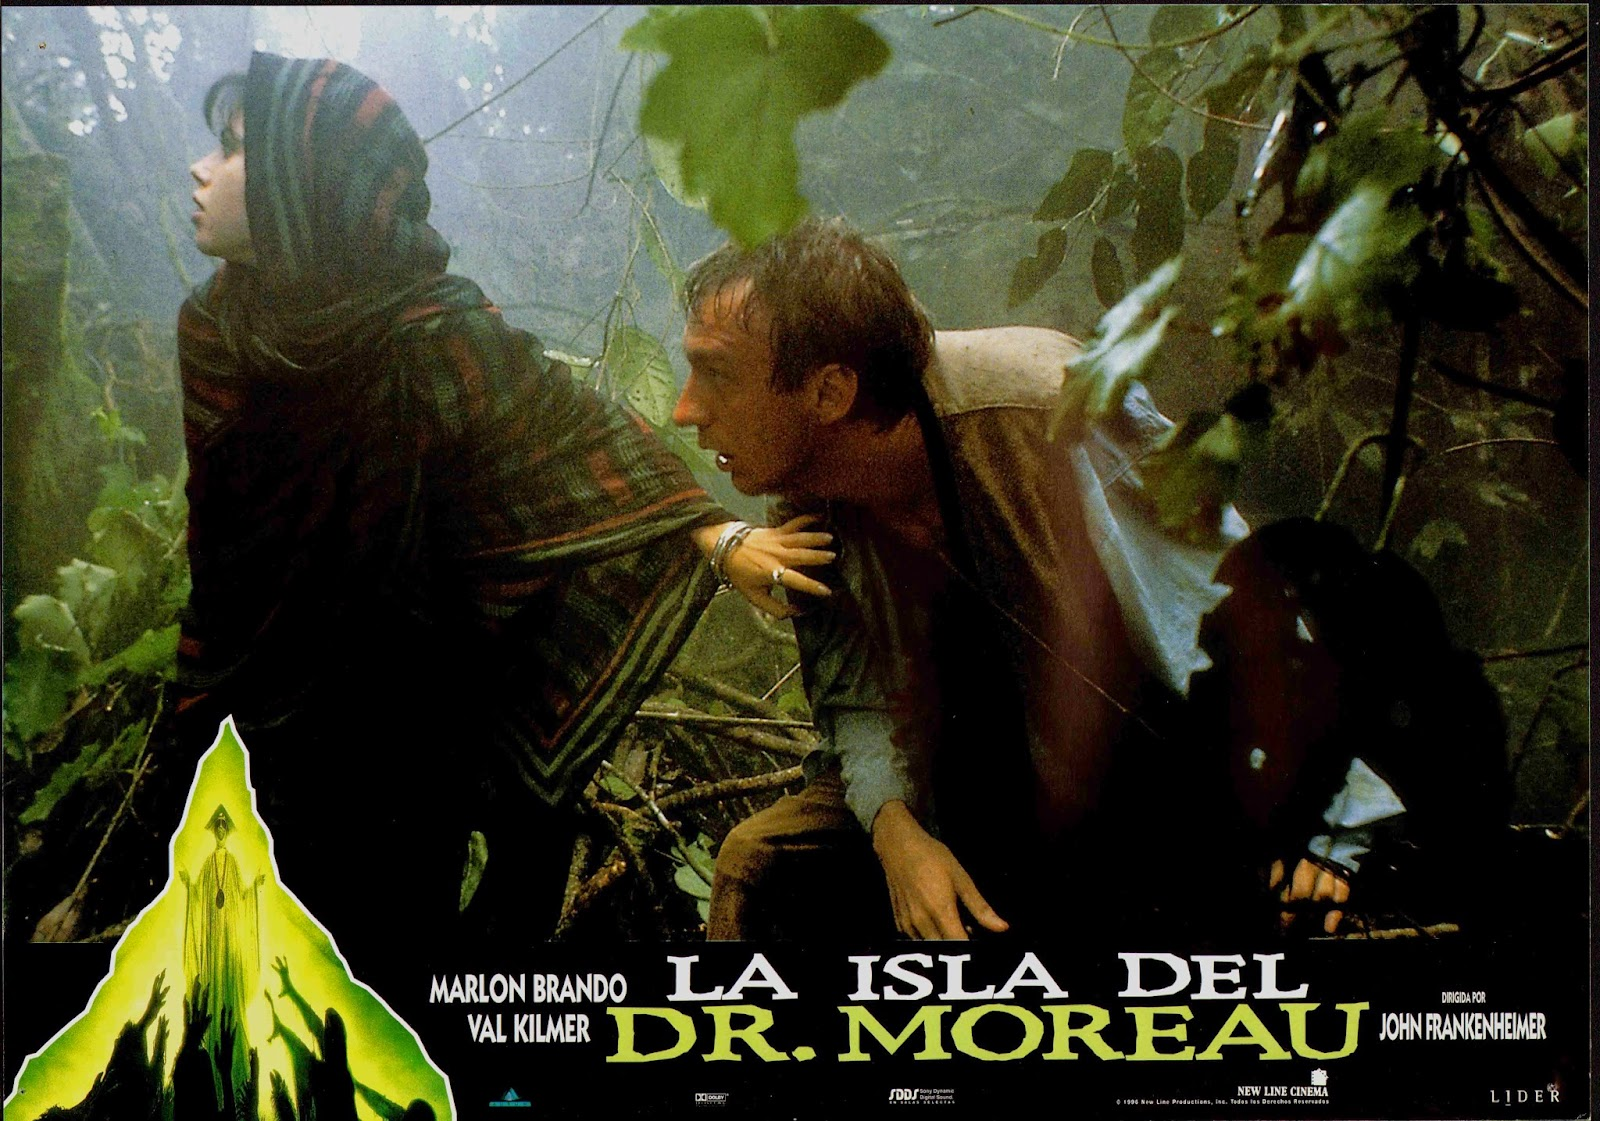 the island of doctor moreau The island of doctor moreau is an 1896 science fiction novel by english author h g wells the text of the novel is the narration of edward prendick, a shipwrecked man rescued by a passing boat who is left on the island home of doctor moreau.